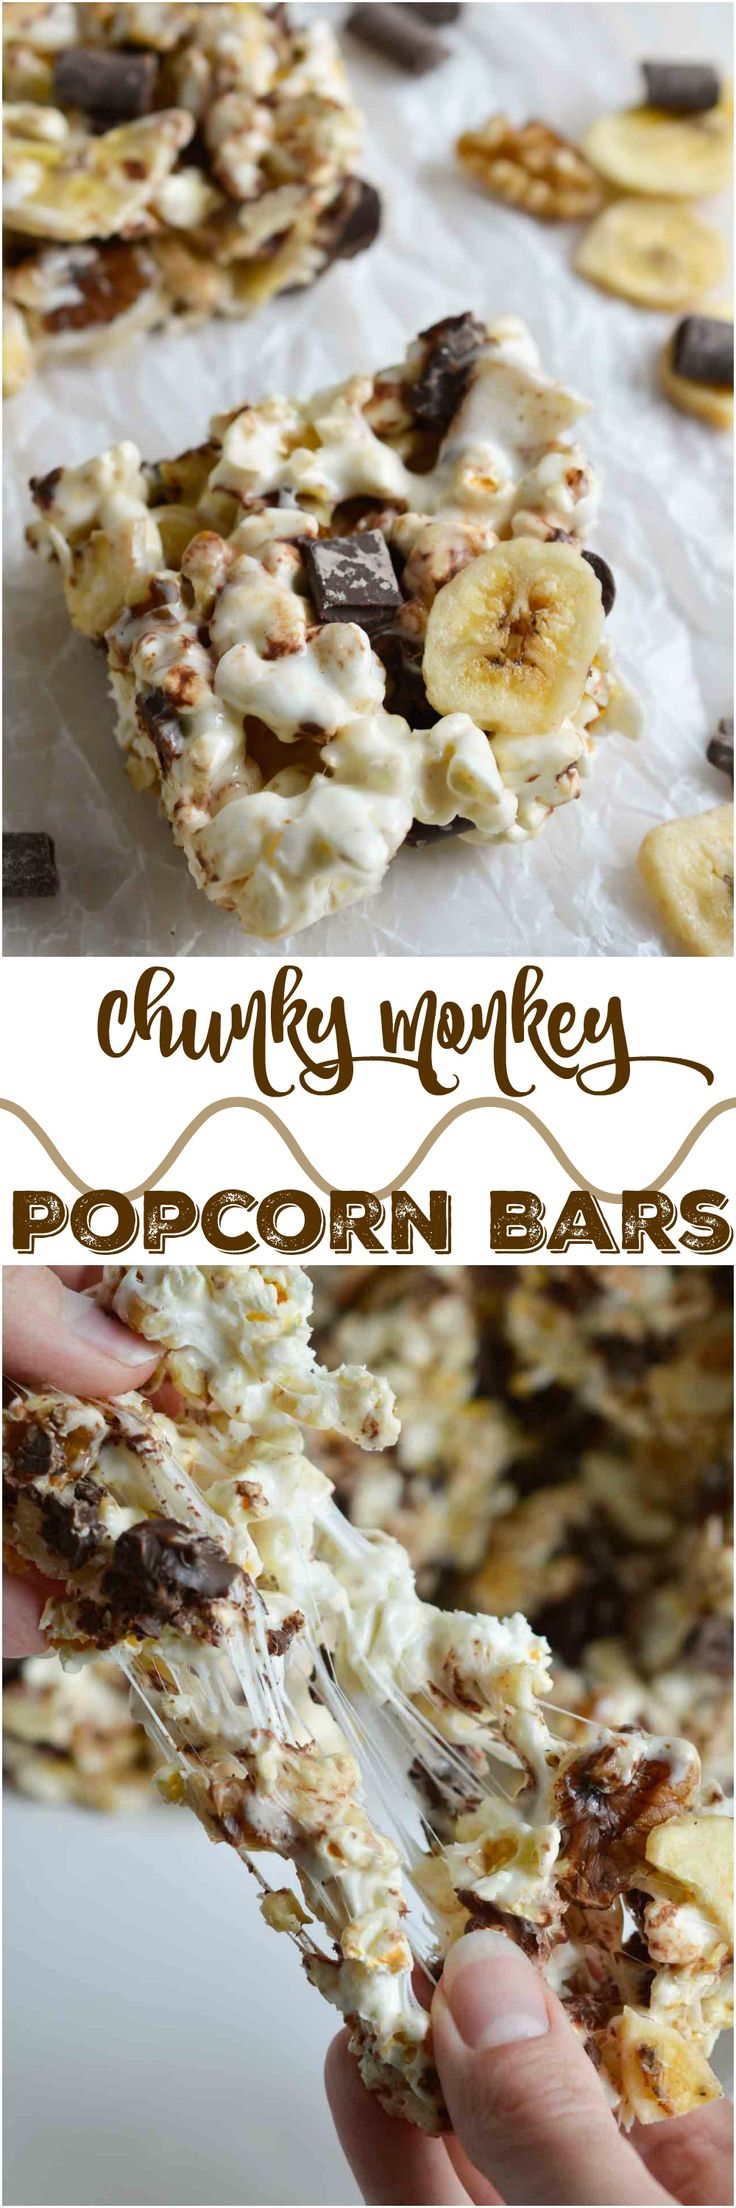 Movie night just got even better with these Chunky Monkey Popcorn Bars! Popcorn marshmallow bars filled with chocolate chunks, banana chips and walnuts. This dessert snack recipe will be a fun family treat! ad